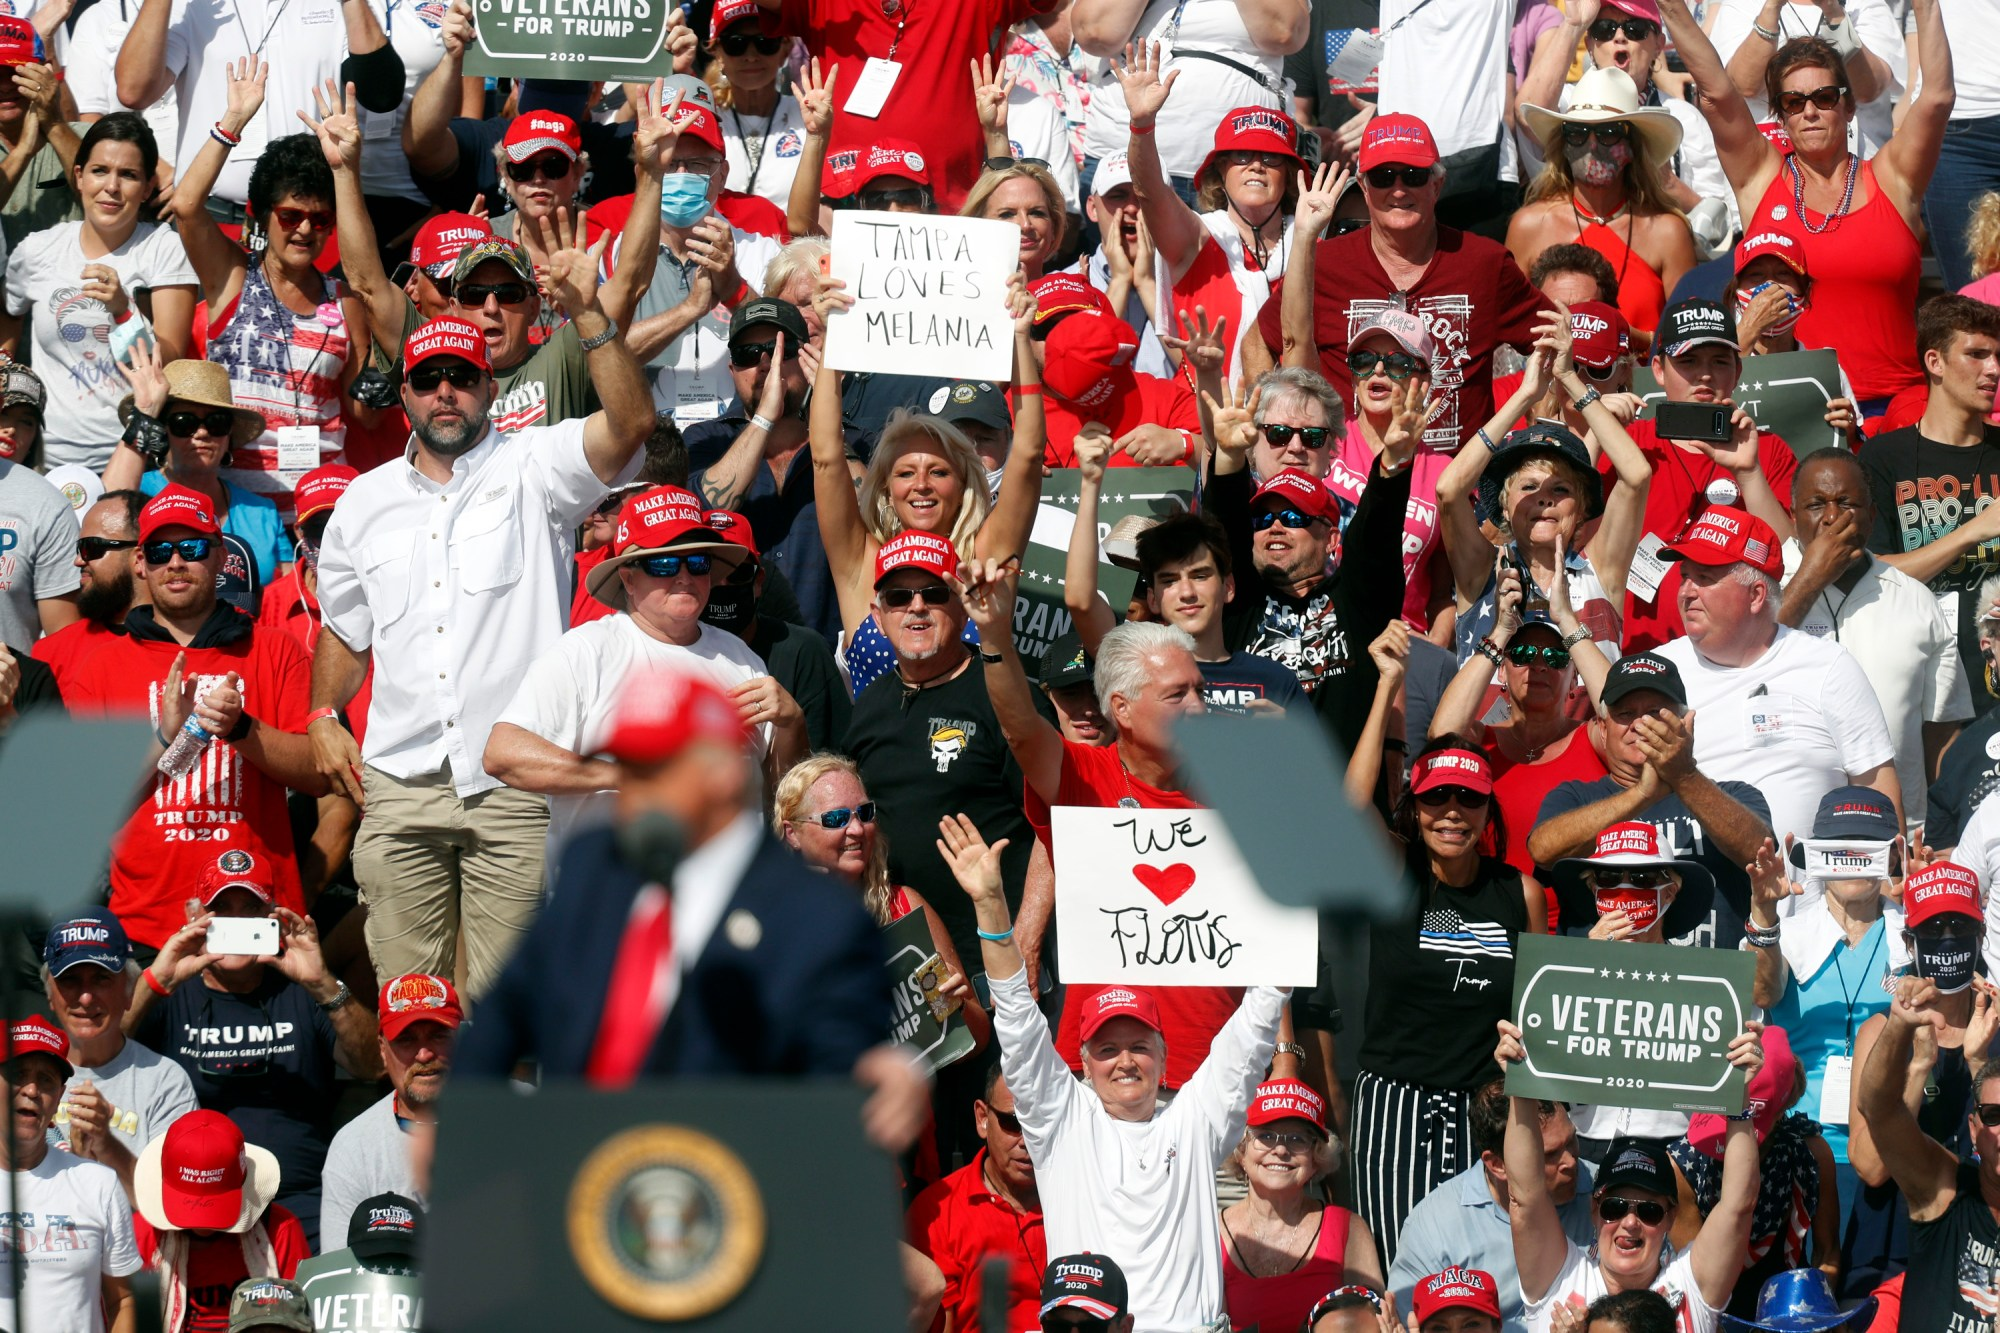 Supporters of President Donald Trump cheer him on while he gives a campaign speech just four days before Election Day outside of Raymond James Stadium on Oct. 29, 2020 in Tampa, Florida. (Octavio Jones/Getty Images)